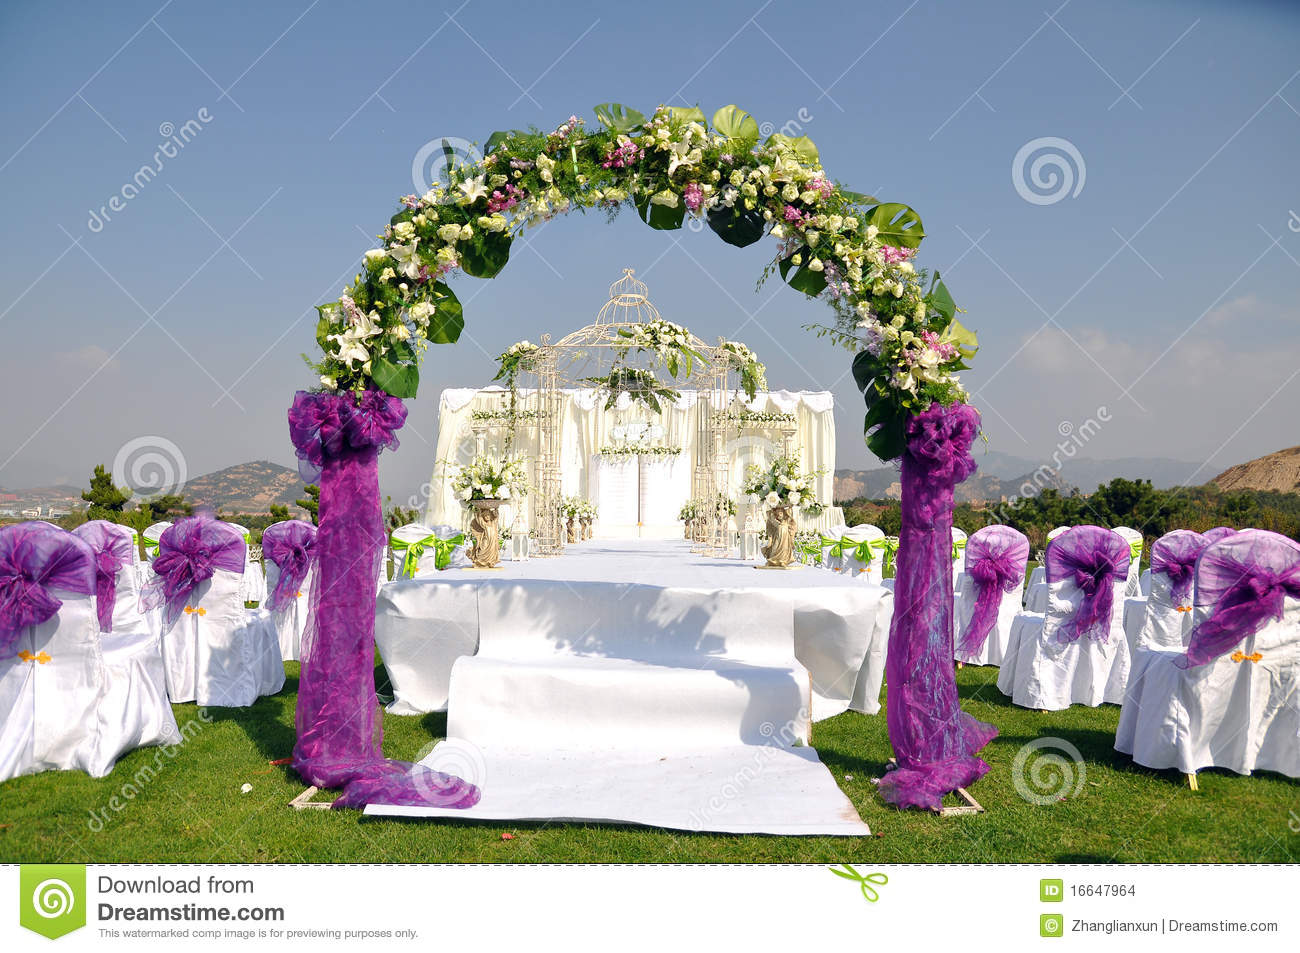 Outdoor wedding scene stock photo. Image of ritual, family   16647964